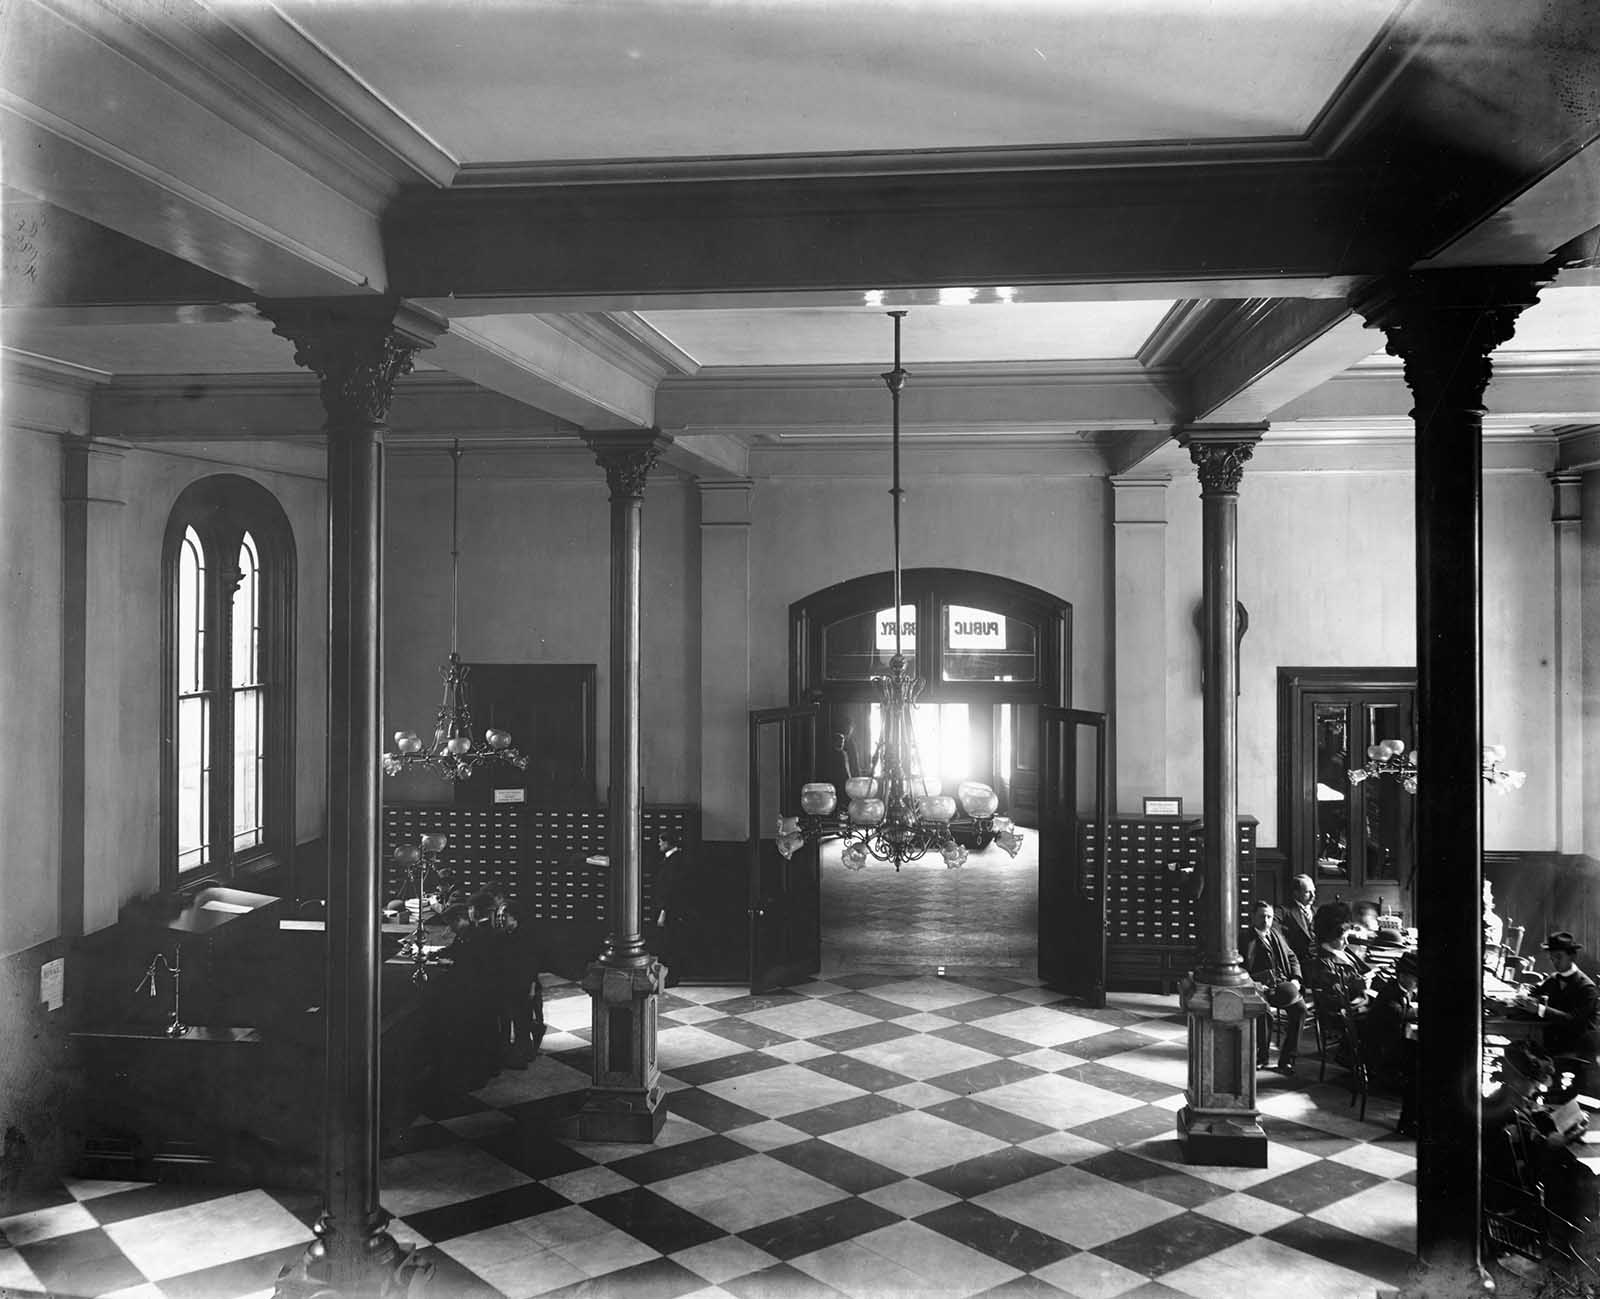 A glimpse of the Main Hall can be seen through vestibule.